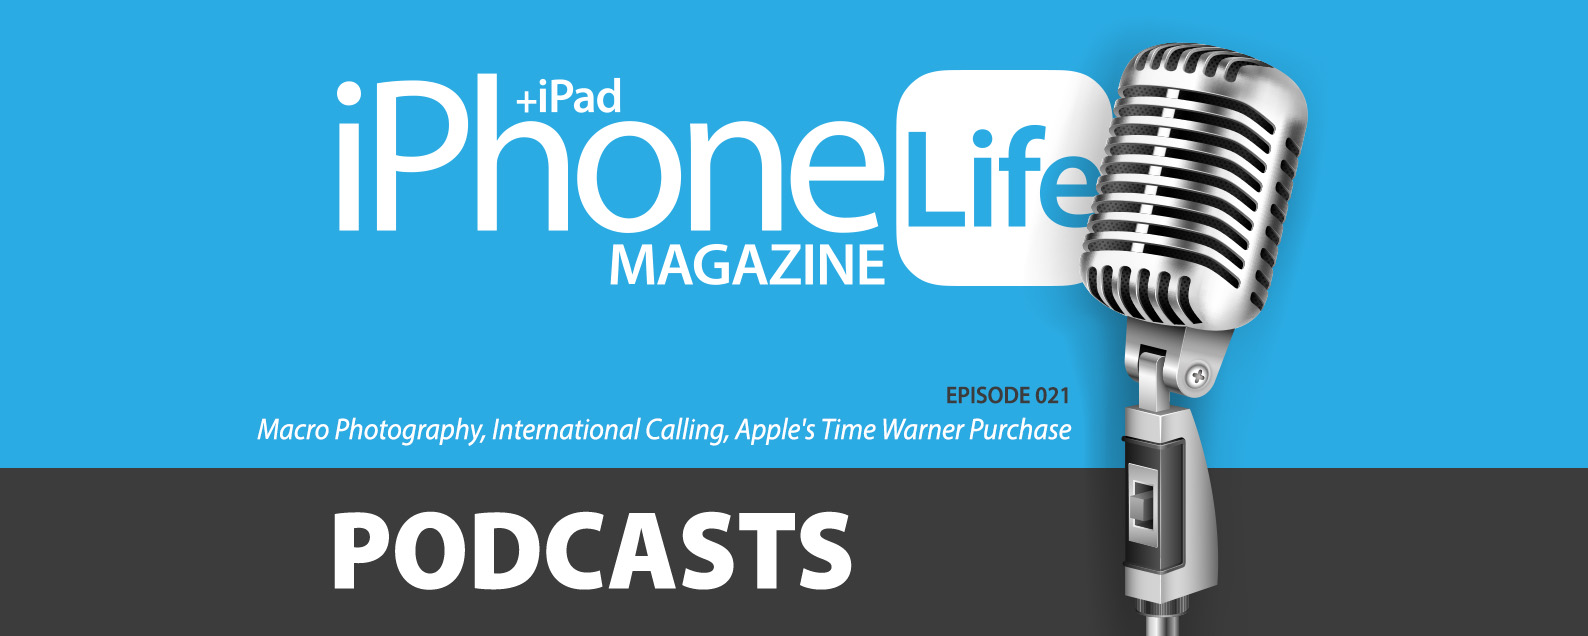 iPhone Macro Photography, International Calling, and Apple's Time Warner Purchase